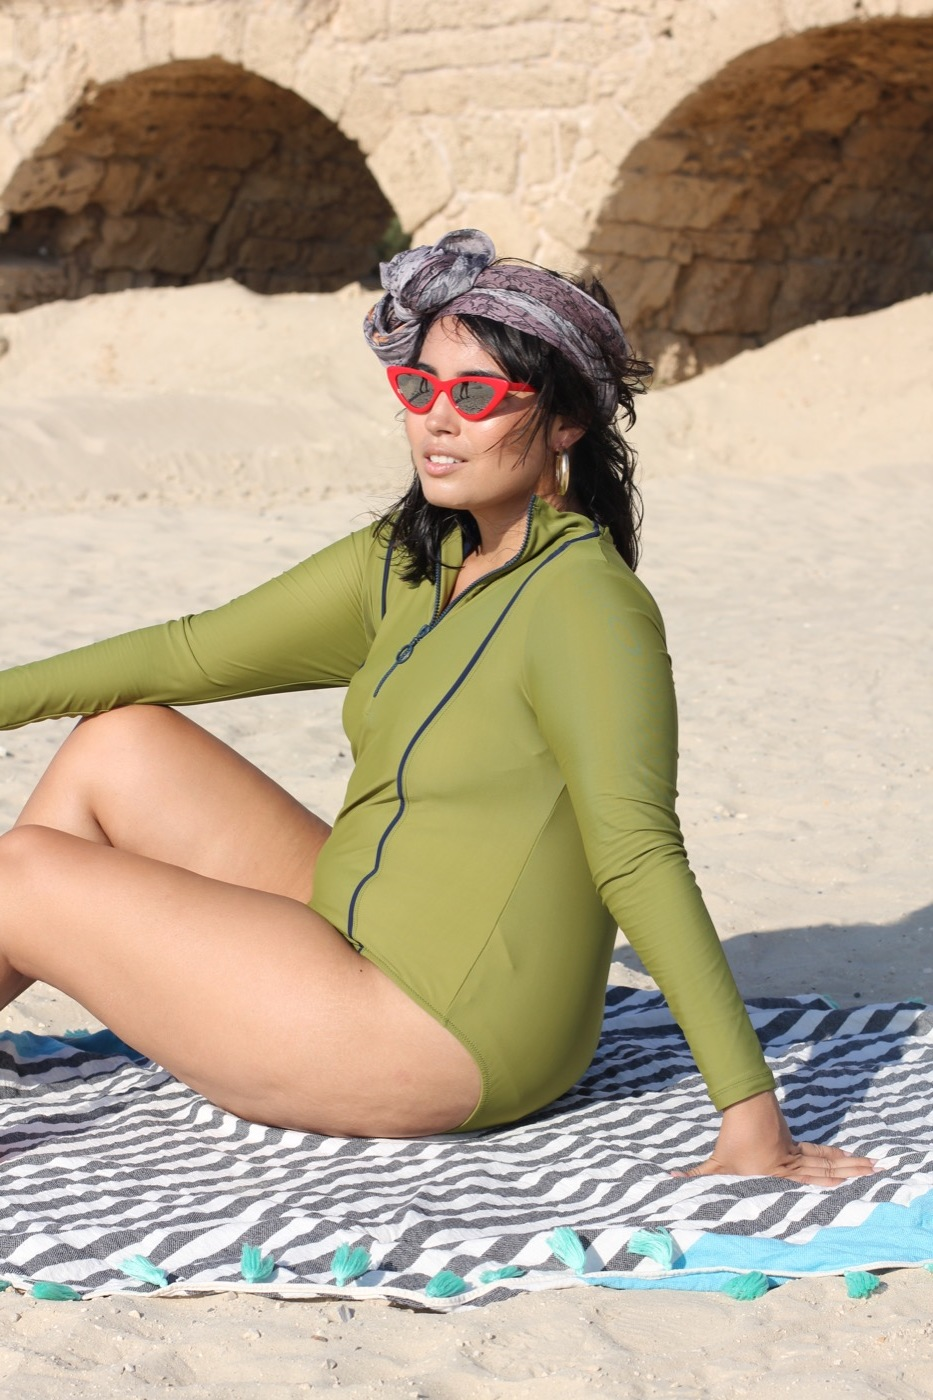 Hannah wears Scarf, Vela scarves ,  Sunglasses, TopTen ,  Sofia 4pce Swimsuit in Olive, Lyra - only 1 piece used here